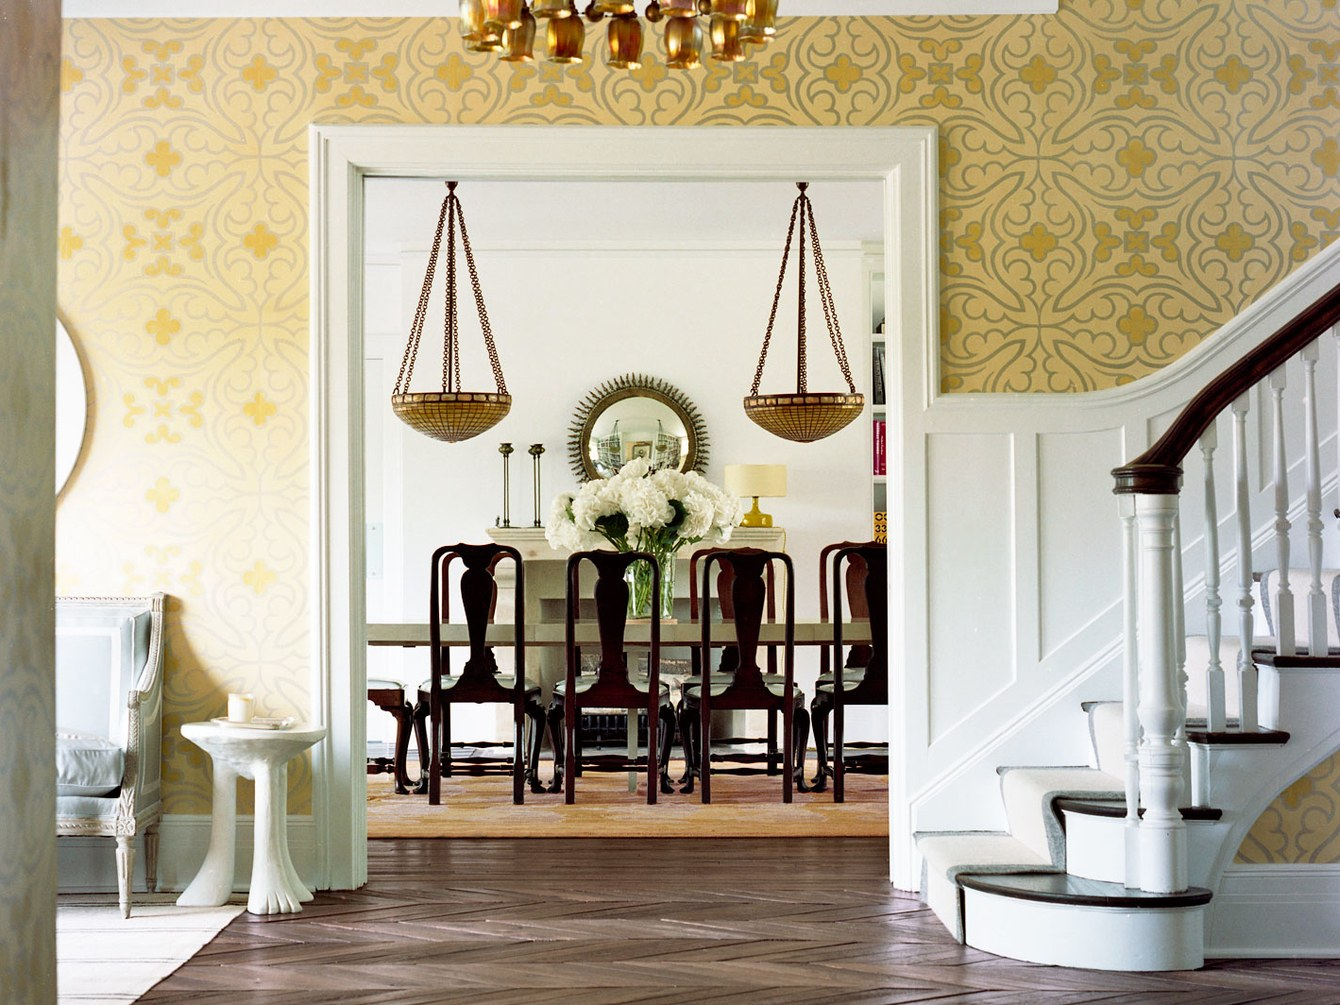 home-remodeling-trends-2017-arts-crafts-home-by-reed-and-delphine-krakoff-adlorettajwillisCirca-1917 Arts & Crafts Home, Elegantly Restored Entry by Reed & Delphine KrakoffDrawing Room with Restored Grid-Pattern Millwork, Reed & Delphine KrakoffVintage Love Seats Anchor this Living Room, Reed & Delphine KrakoffNew Kitchen Cabinetry, Vintage Holophane Pendant Lights and Sink Fittings Fit the Era of this Home, Reed & Delphine KrakoffStunning Master Bath with Furniture-style Cabinetry, Carrara Marble Basket-weave Mosaic Dotted with Black Marble, Lauren DeLoach